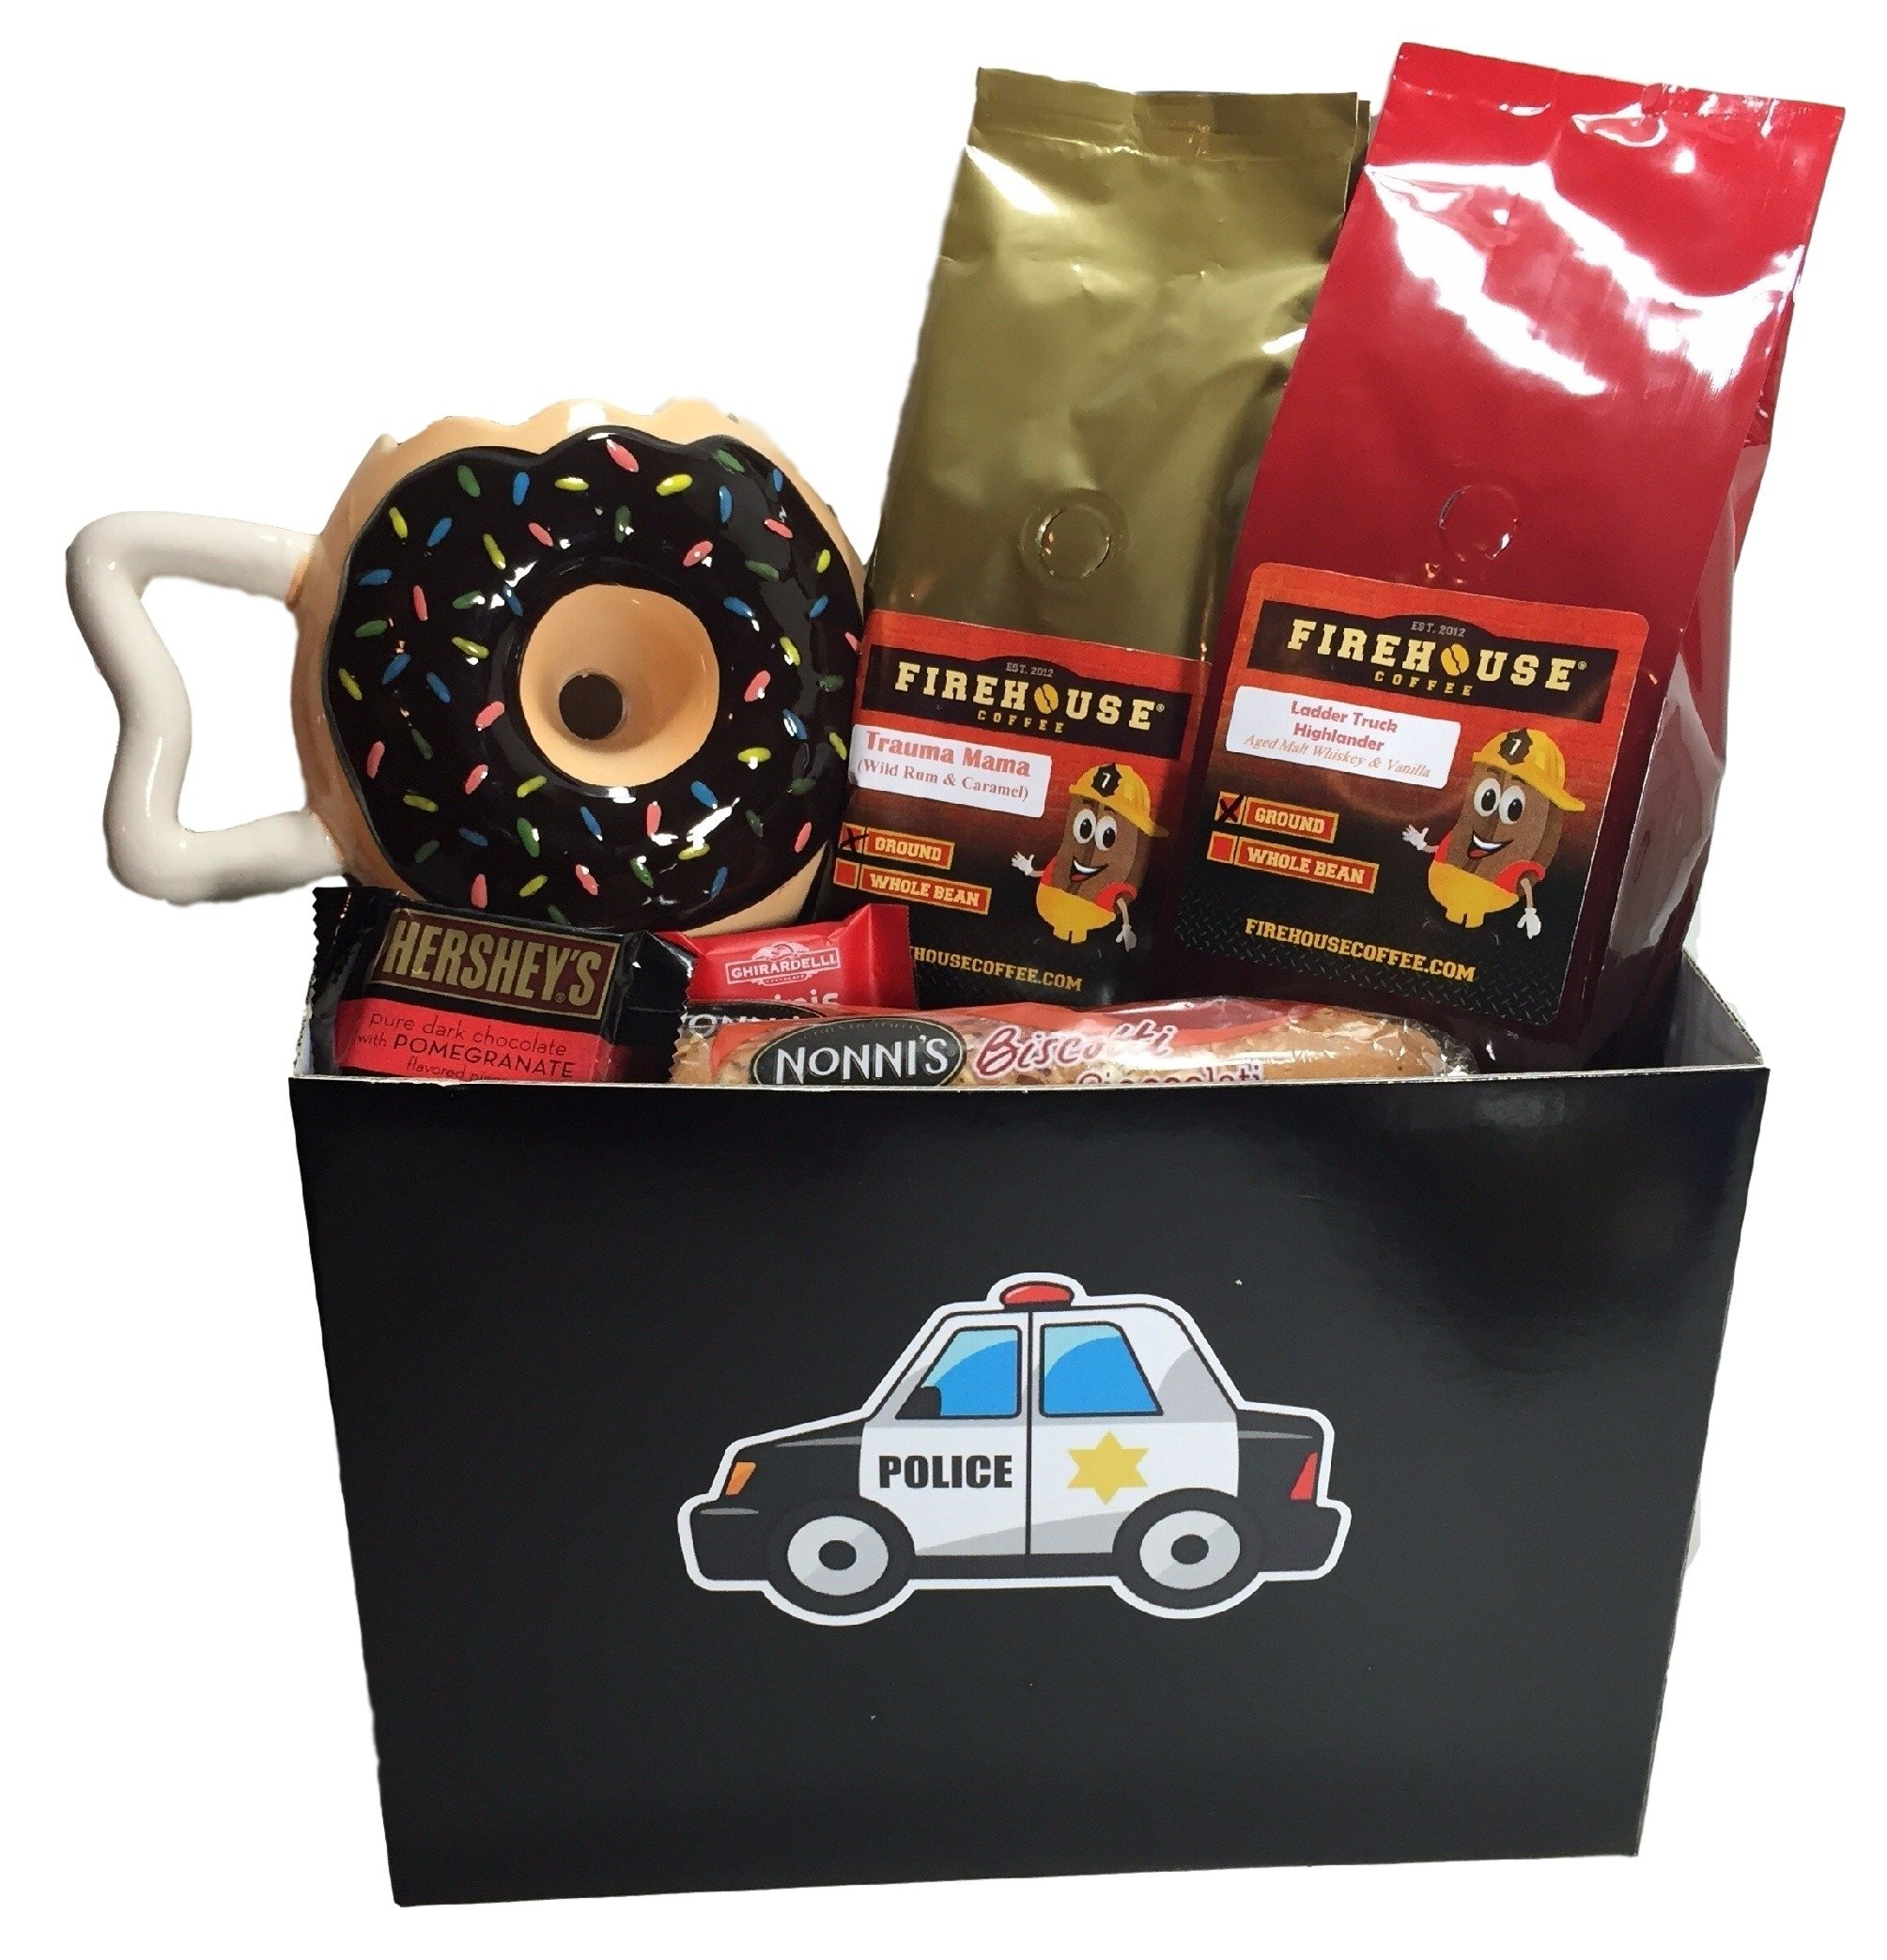 10 Lovable Gift Ideas For Police Officers police officer gift ideas gift basket appreciation for police 2020